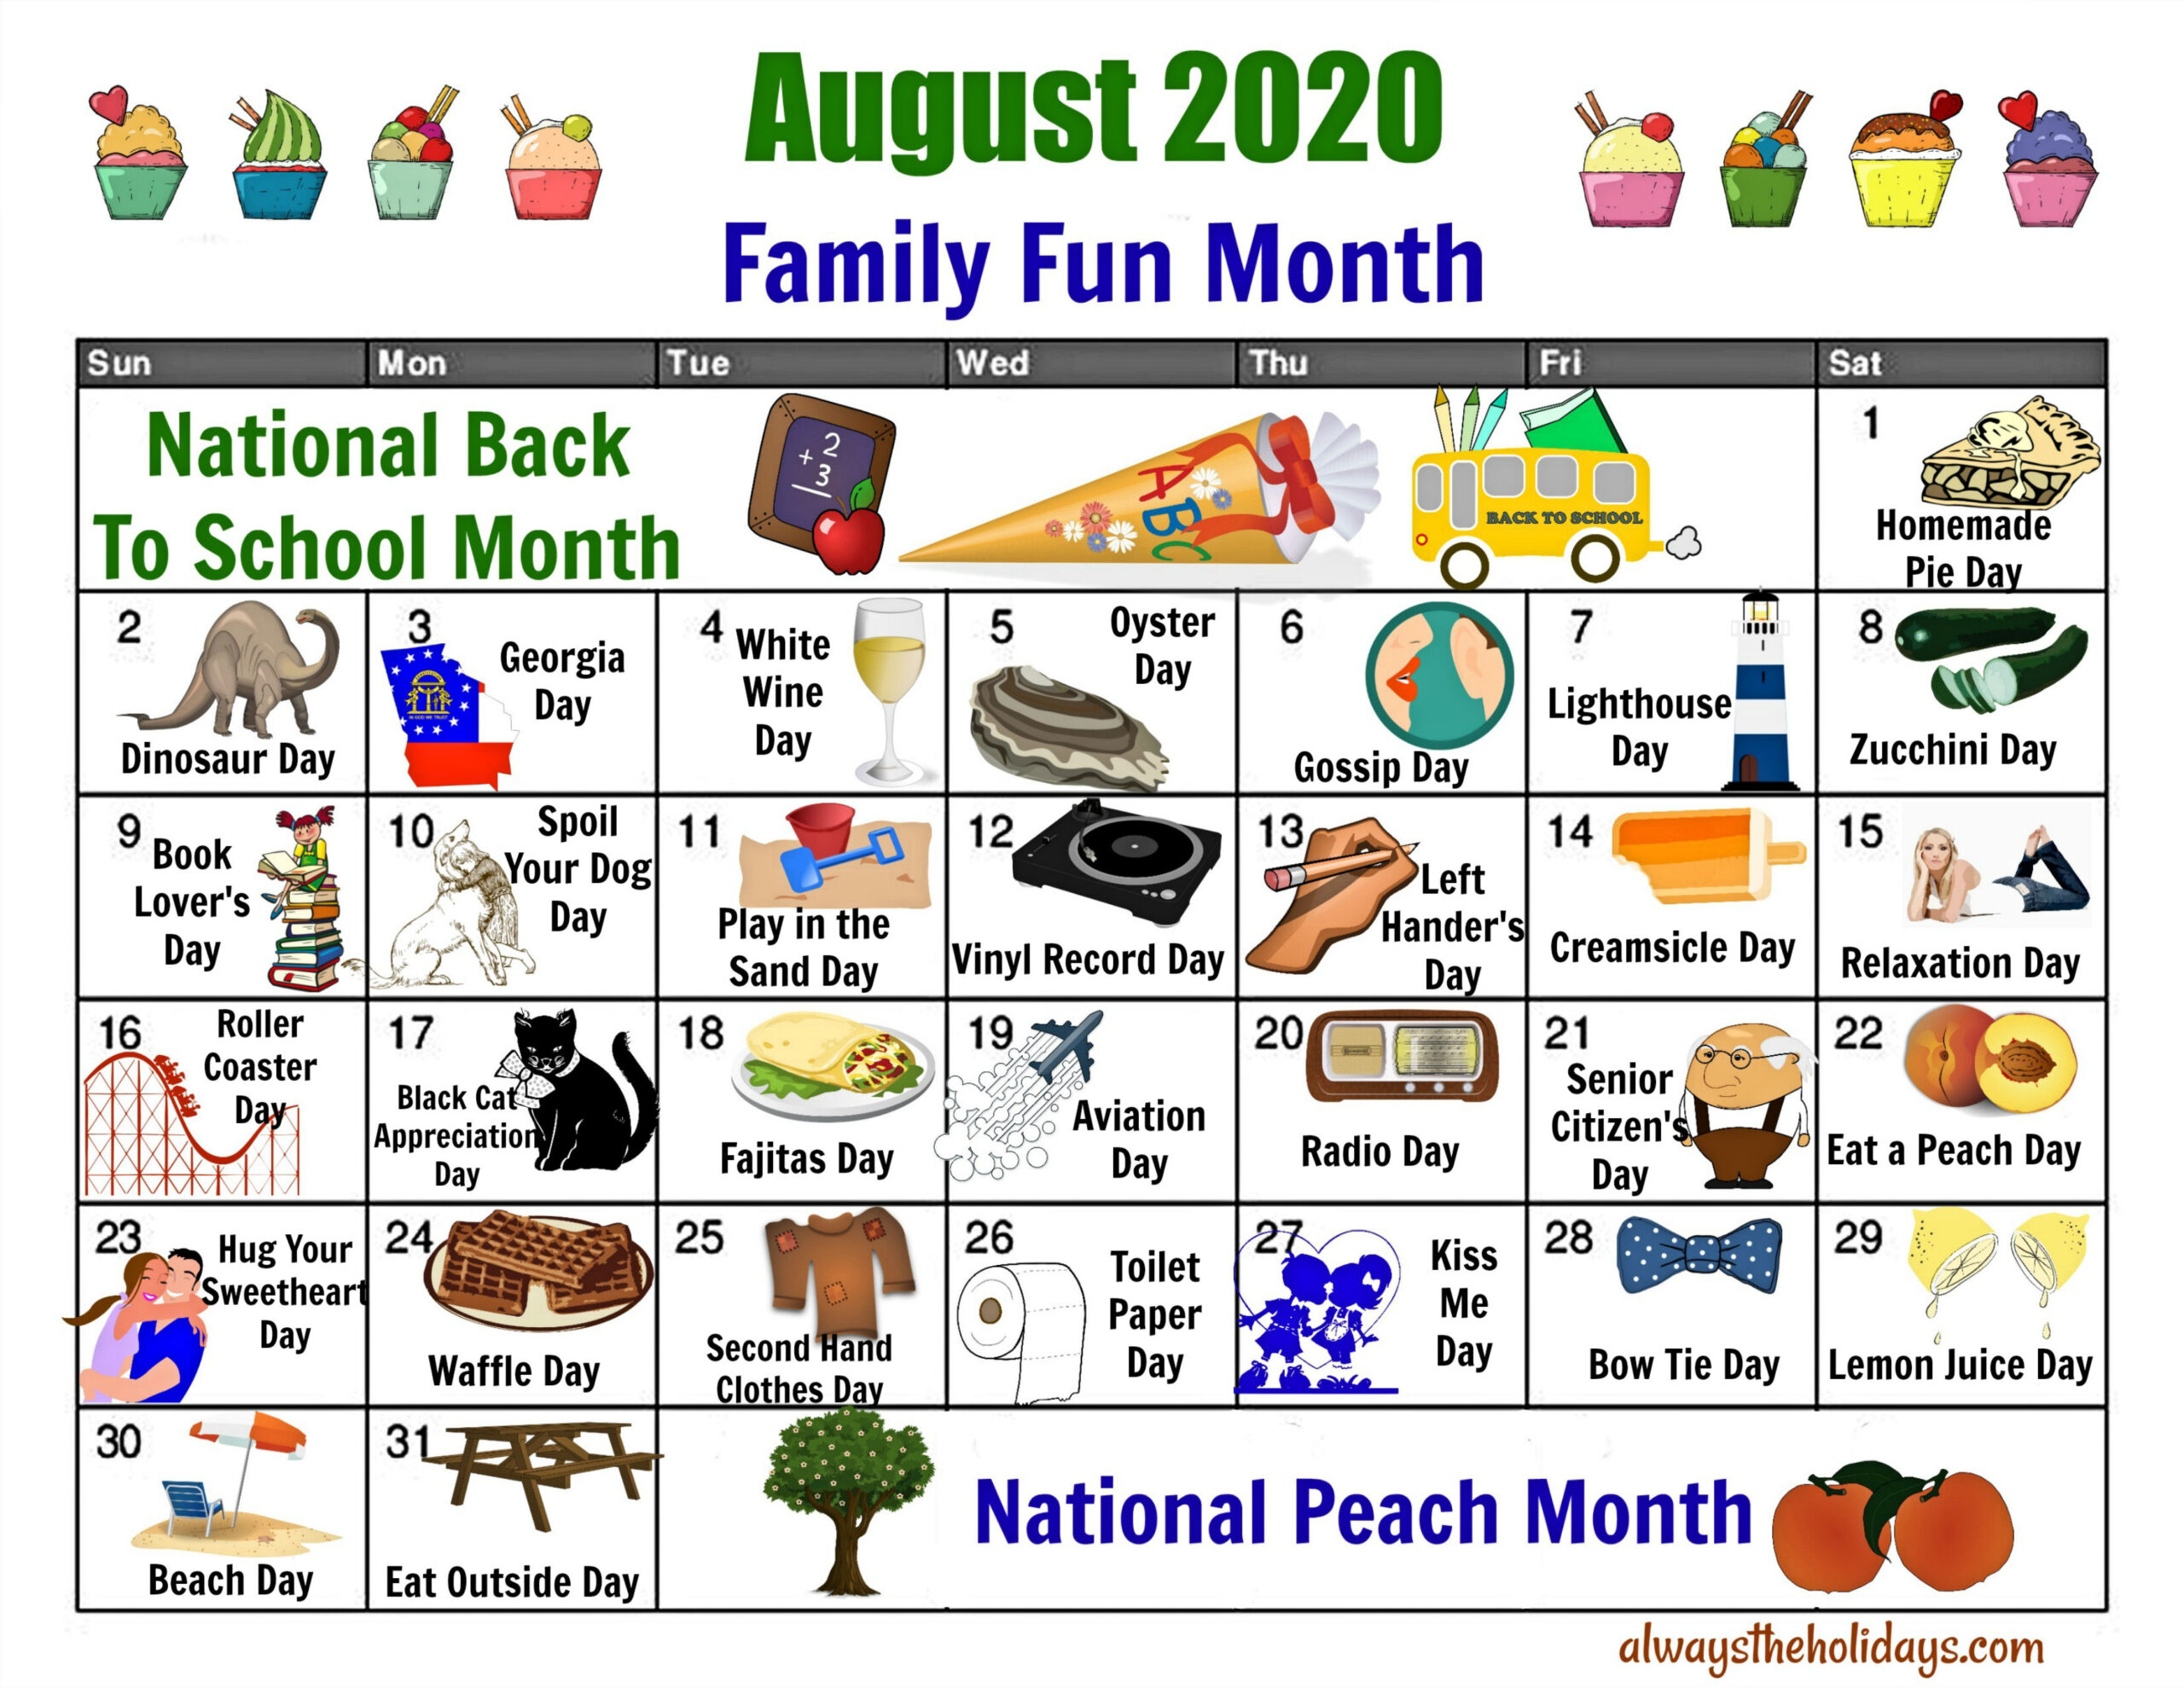 August National Day Calendar - Free Printable Of National Days regarding Printable National Day Calendar 2021